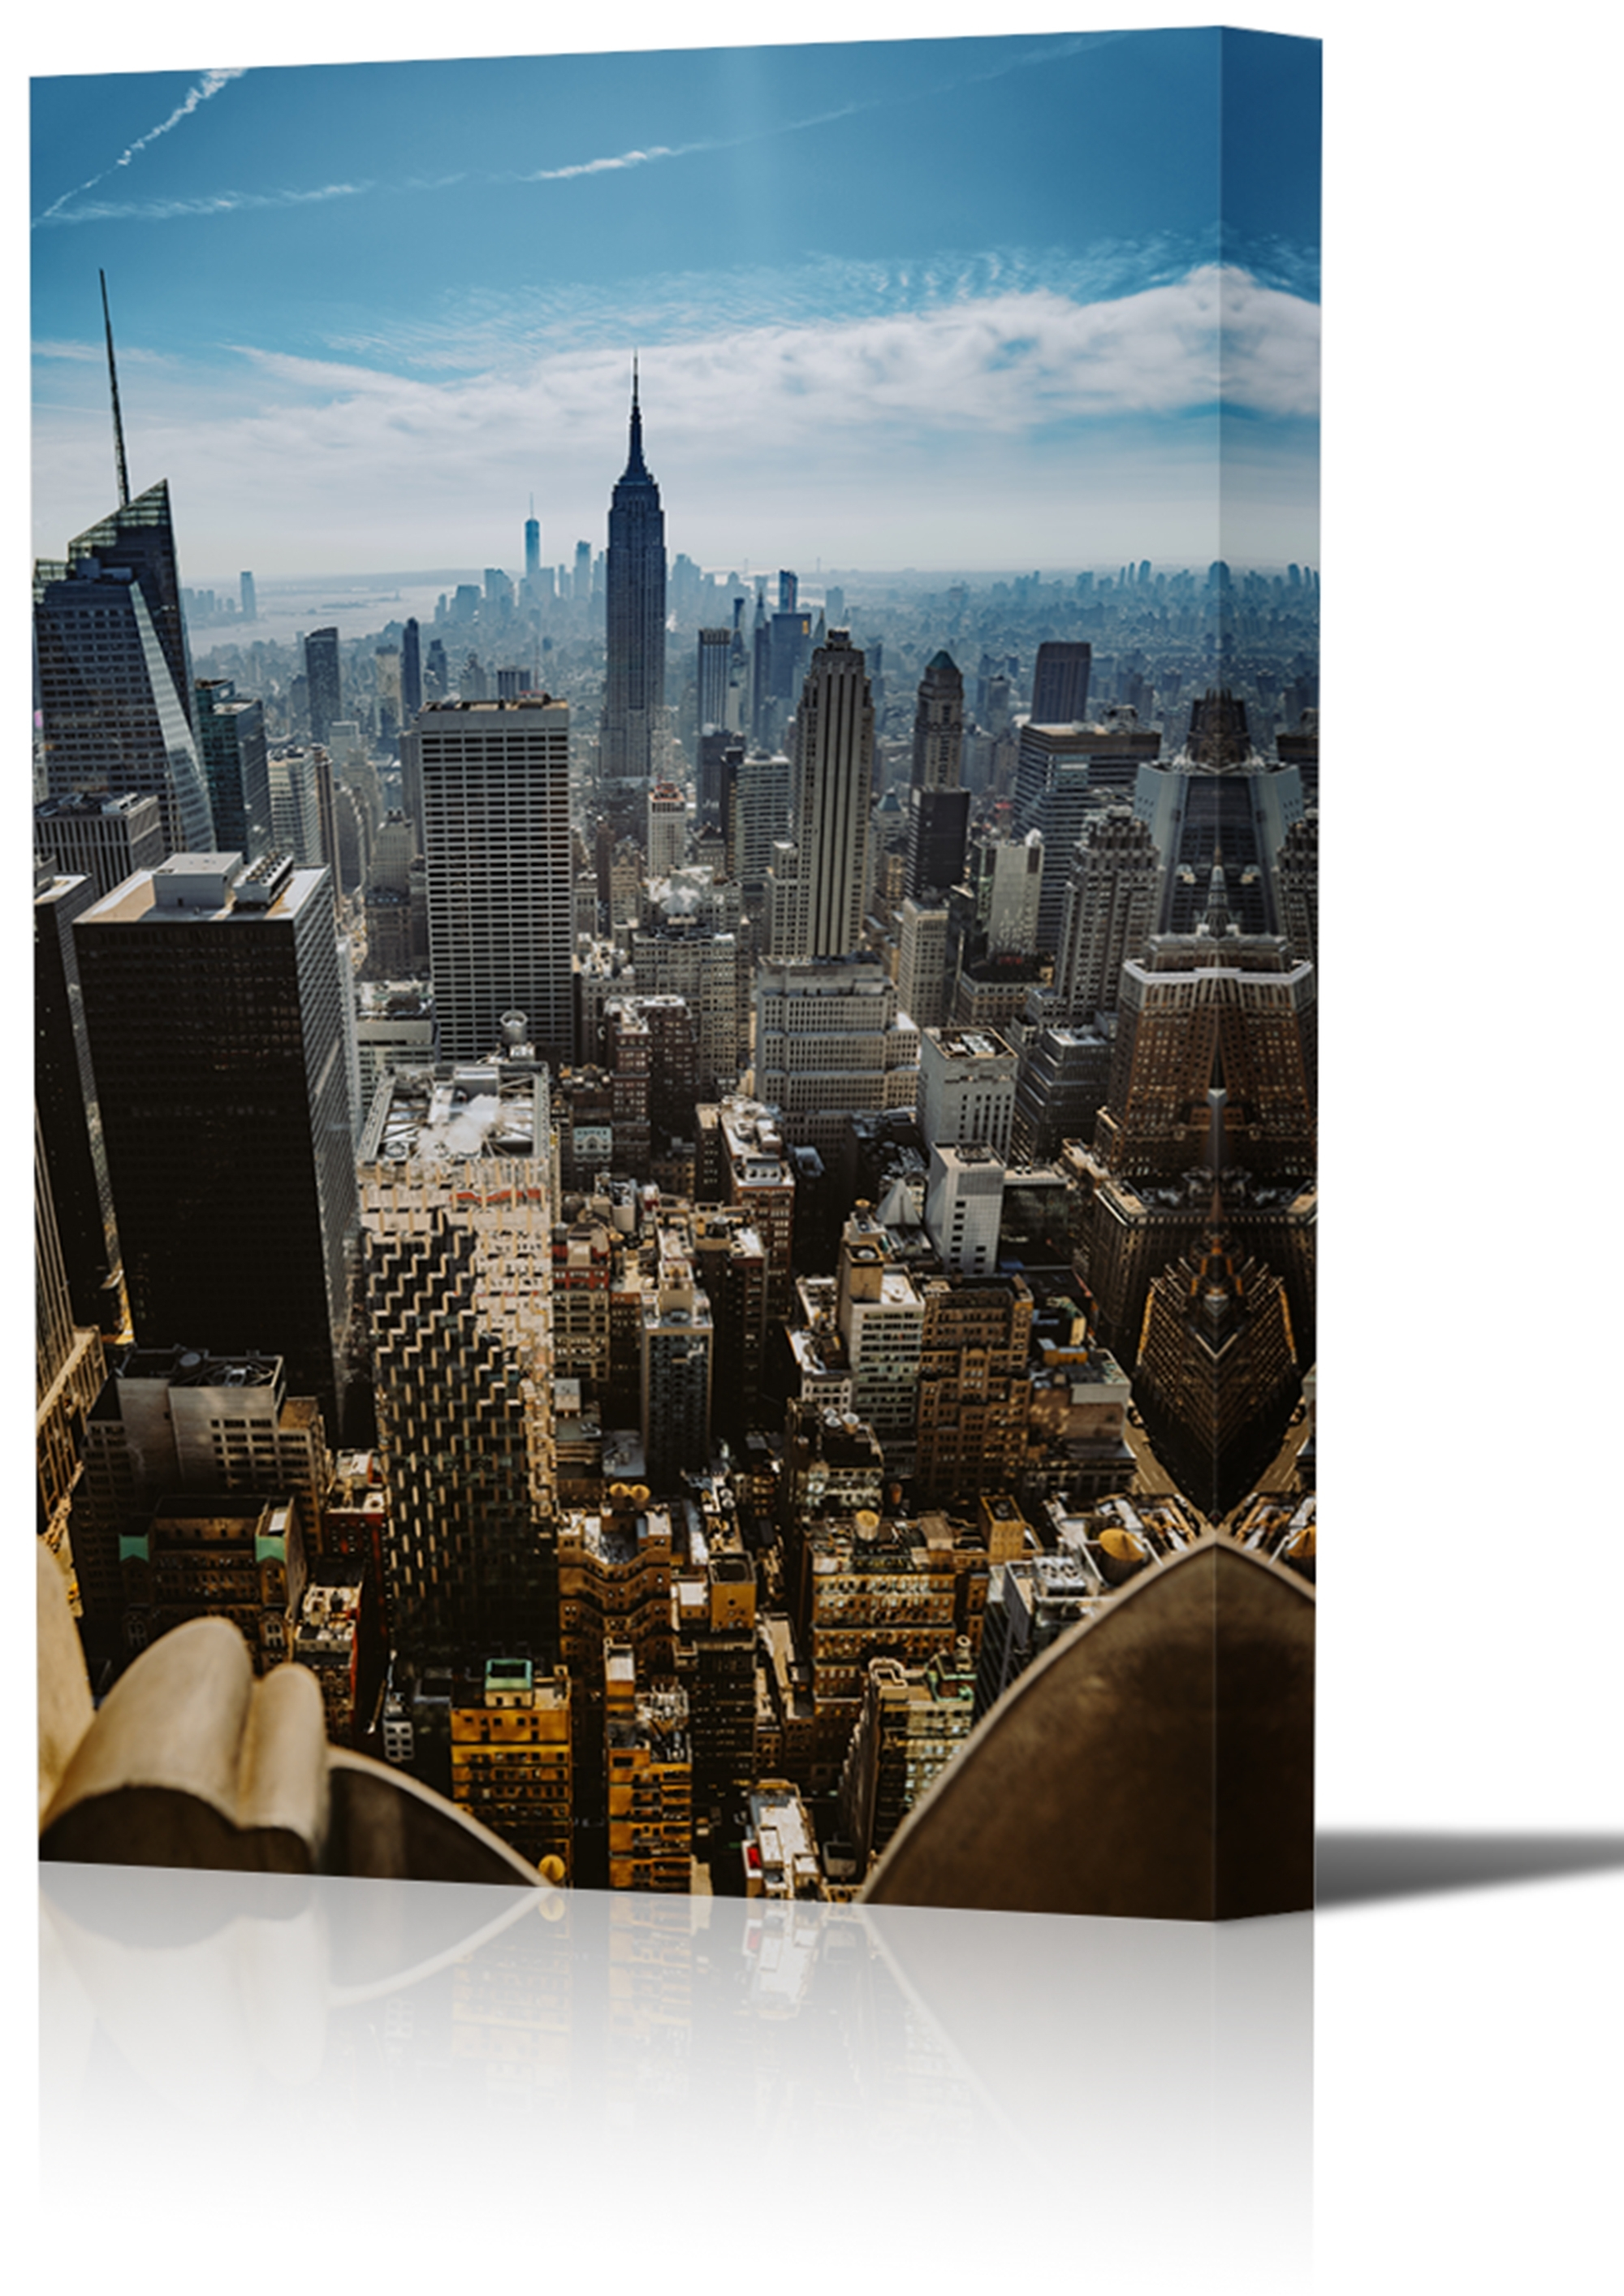 Top Of The Rock New York City Art Print Wall Decor Image Canvas Pertaining To Most Up To Date New York Wall Art (View 13 of 15)